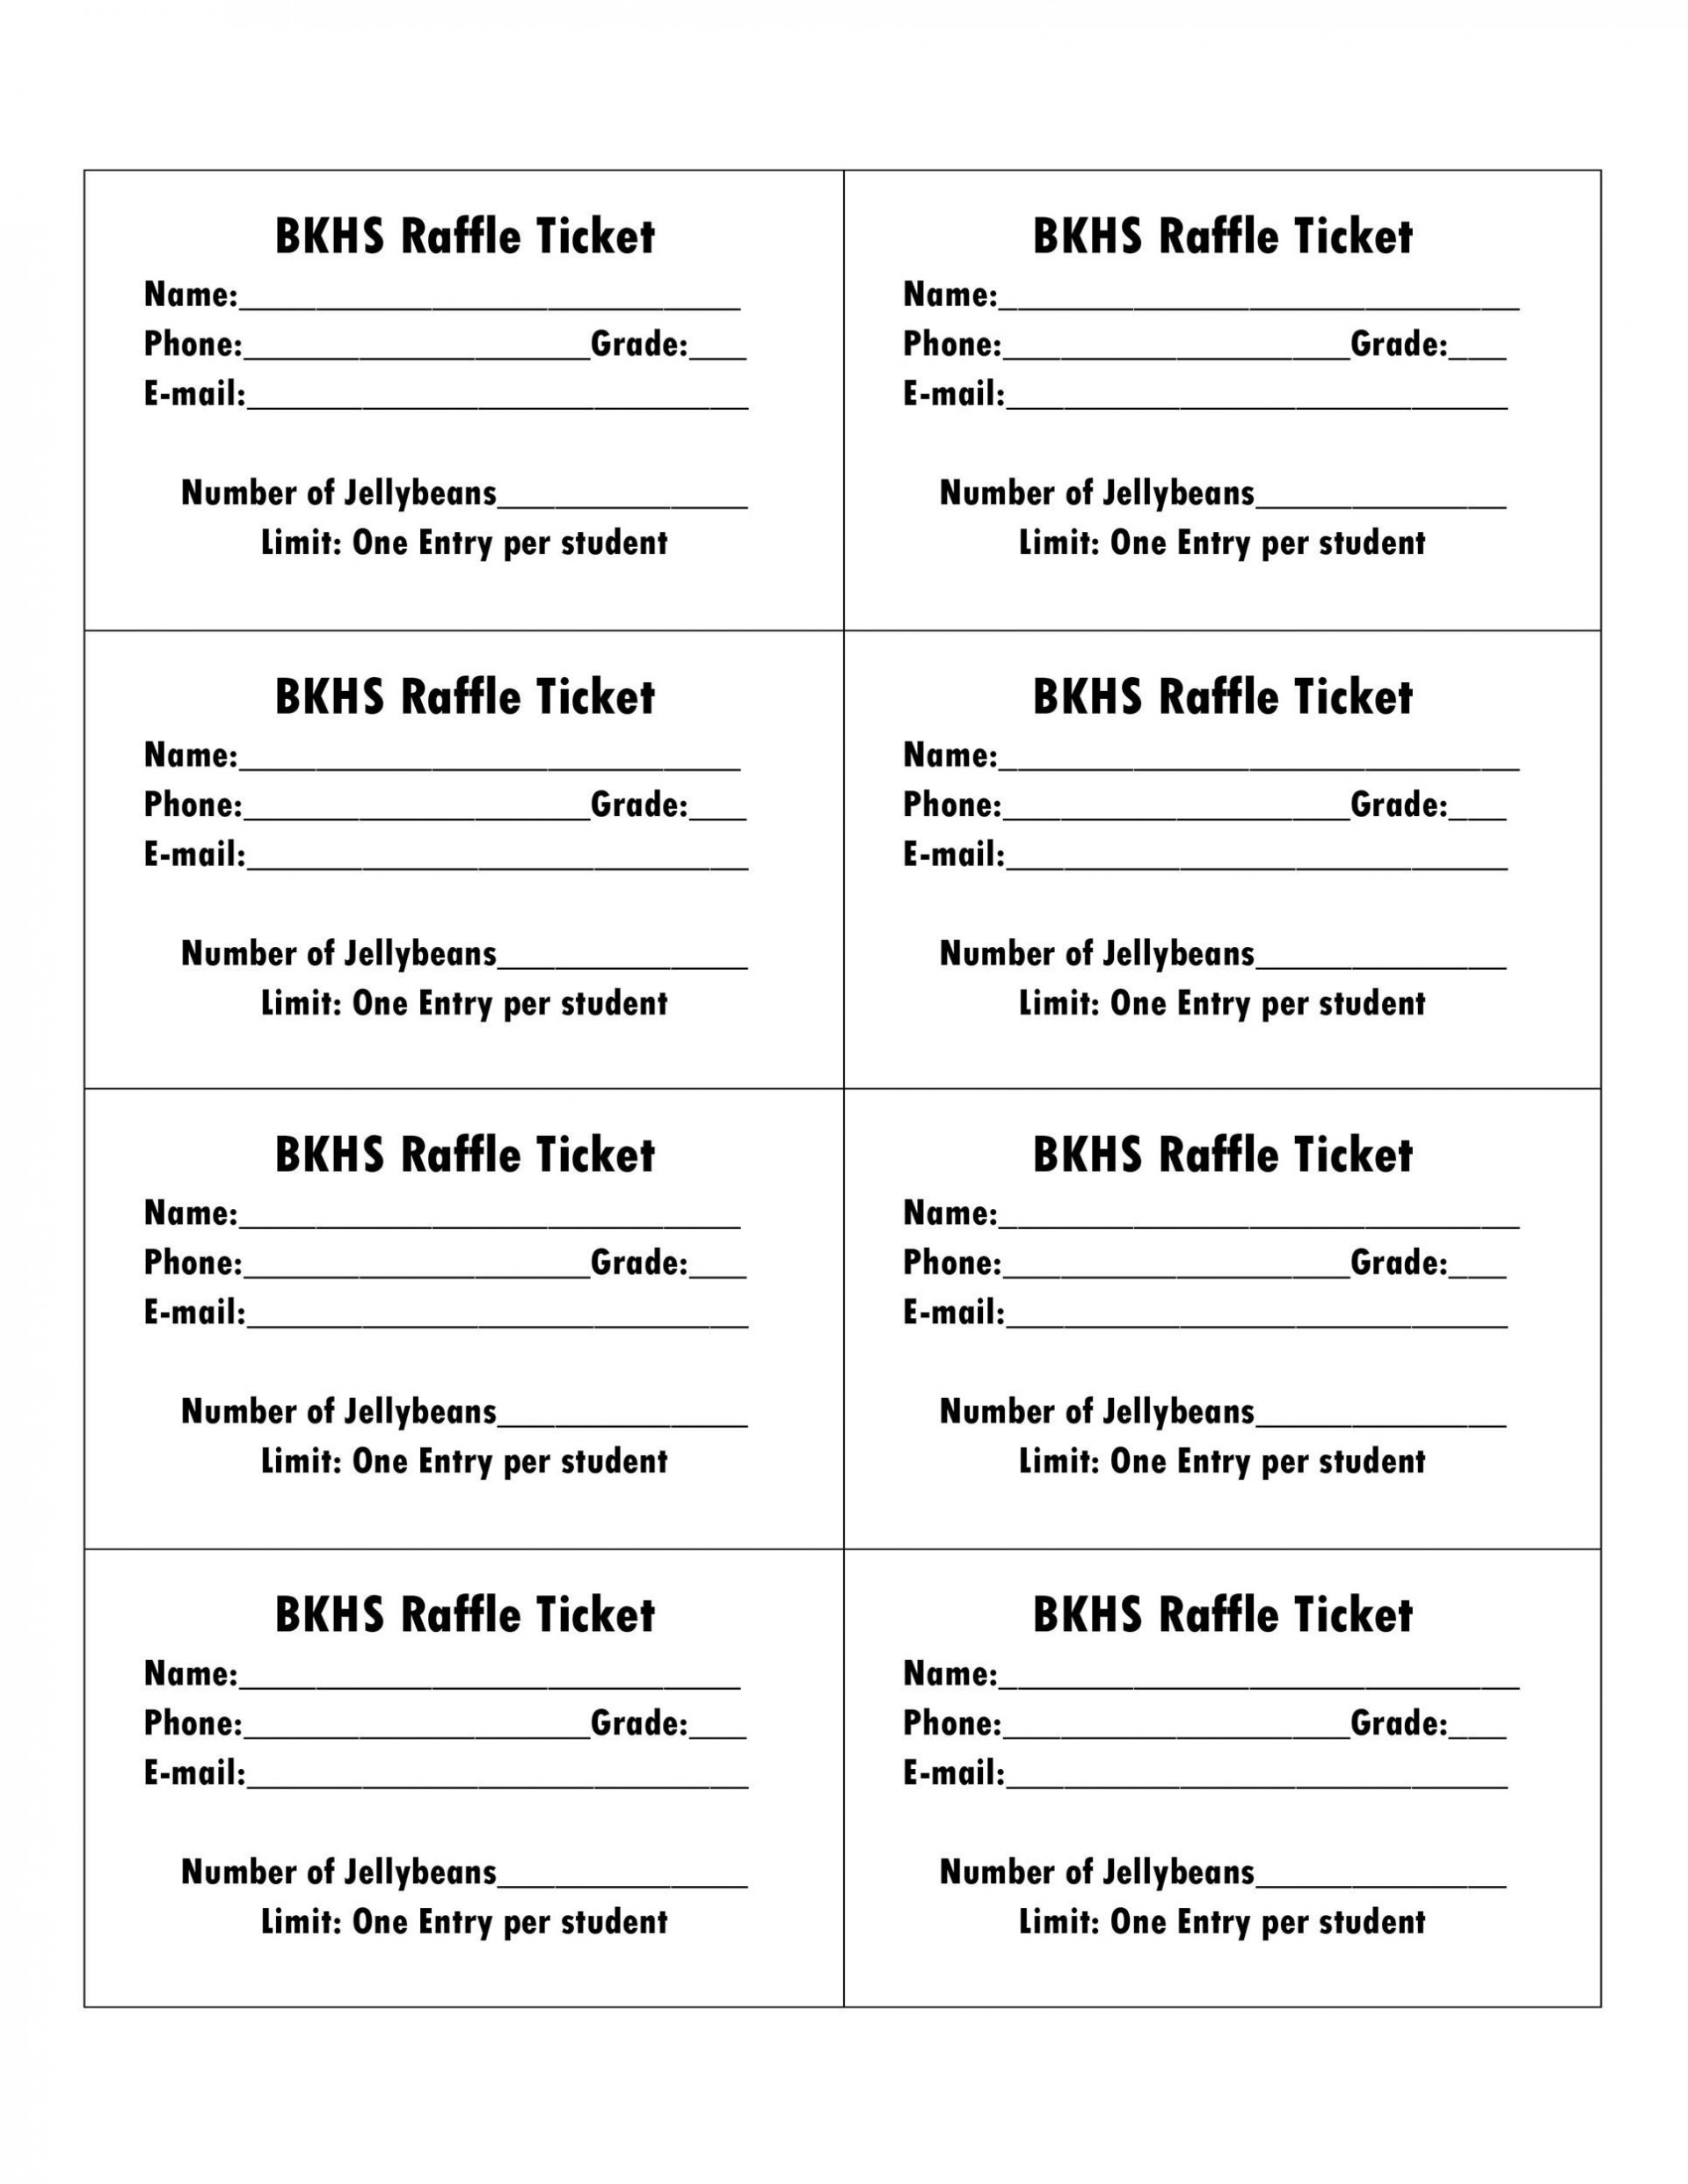 008 Remarkable Free Printable Ticket Template Design  Raffle Printing Airline For Gift Concert1920